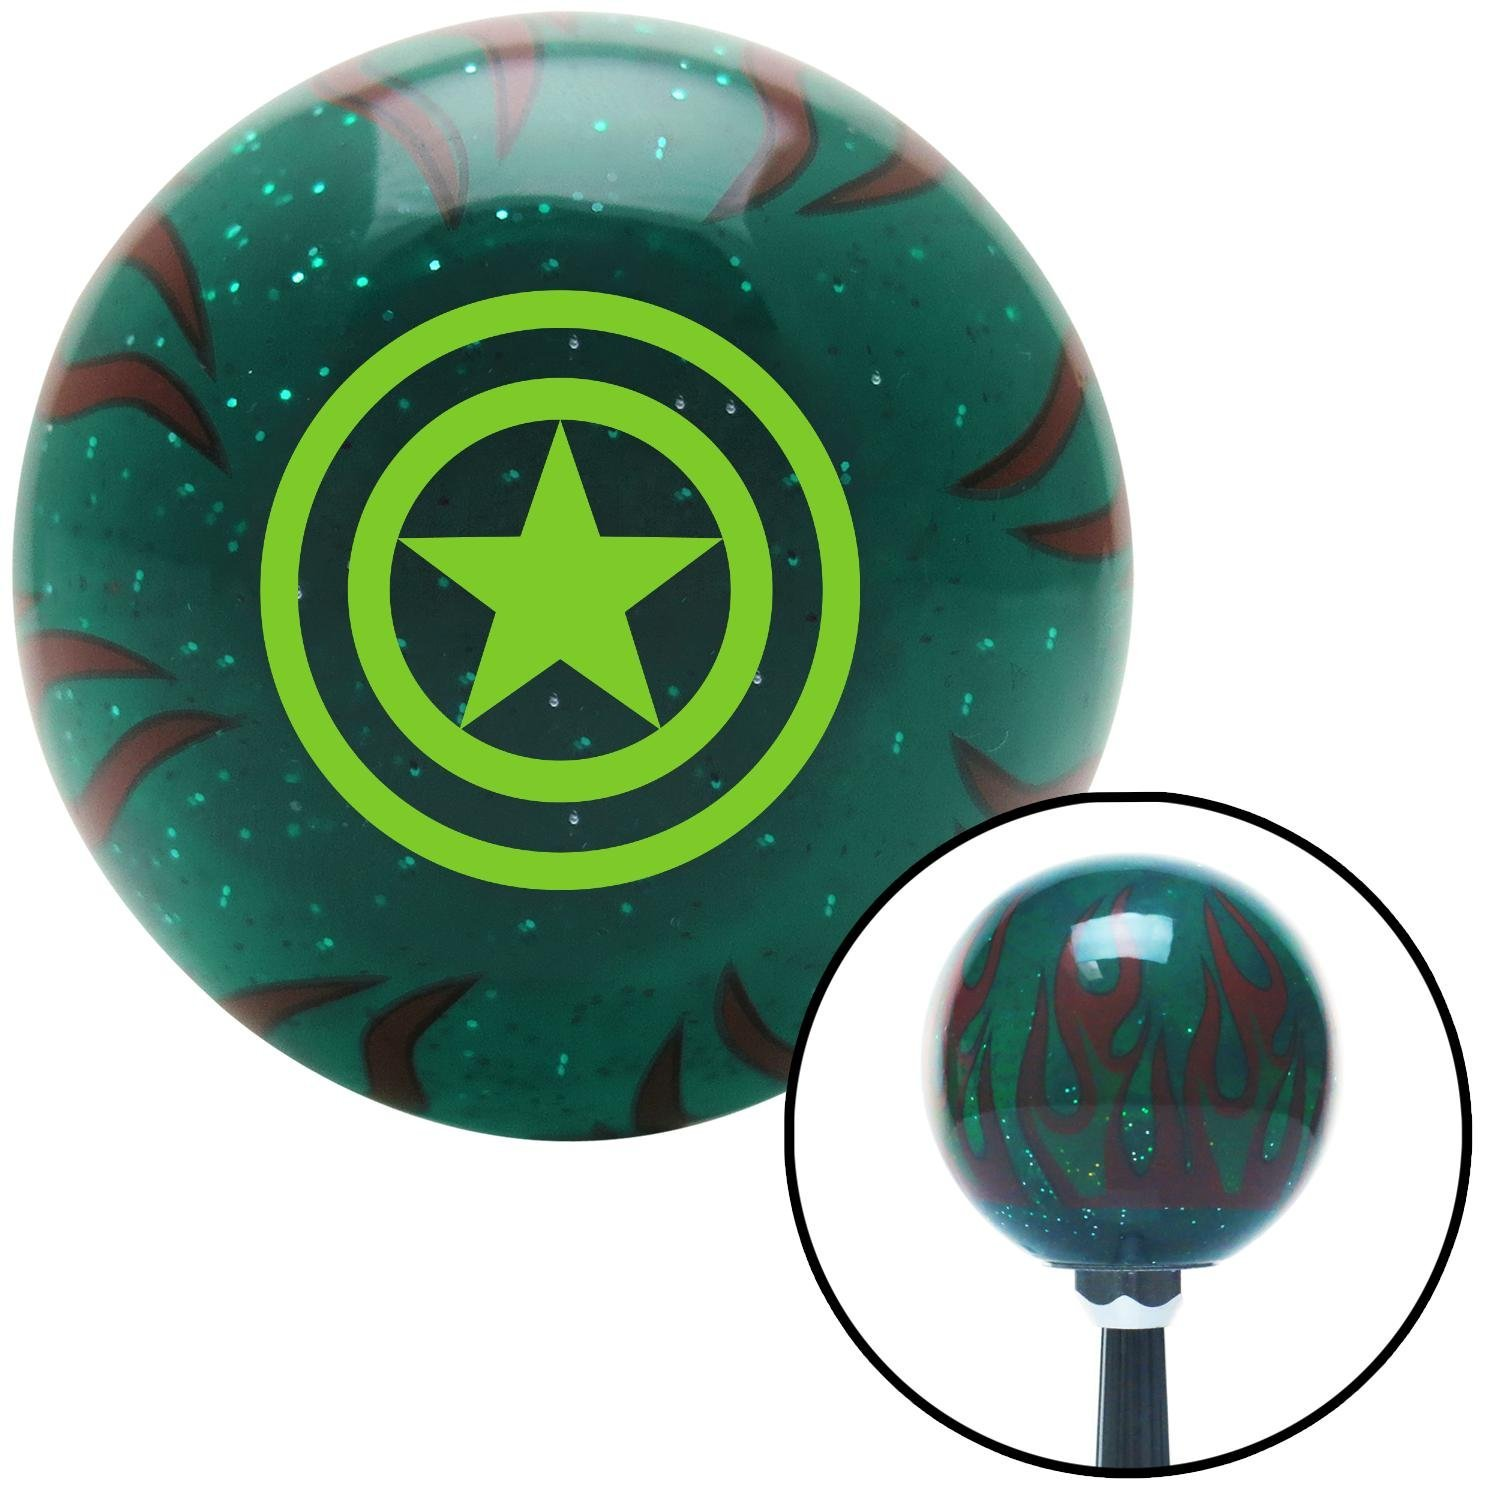 American Shifter 266820 Green Flame Metal Flake Shift Knob with M16 x 1.5 Insert Green Star Inside Circles